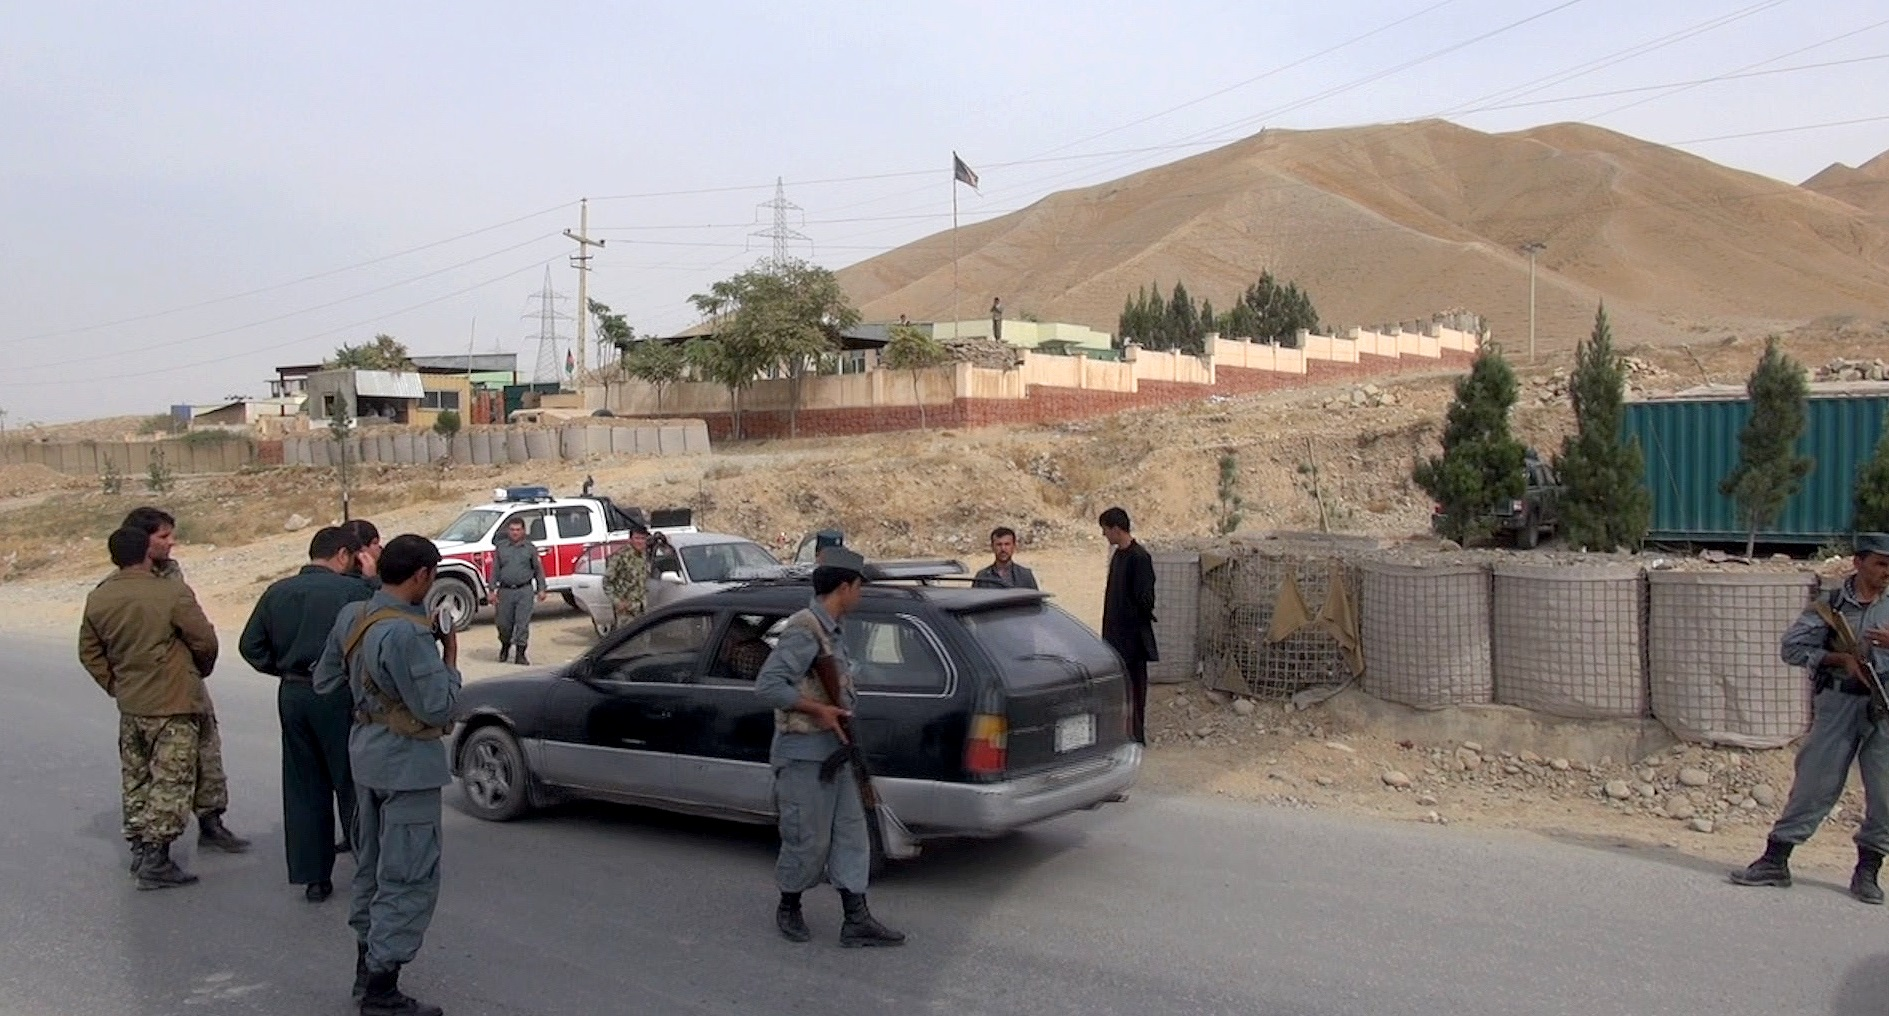 A police checkpoint near Pul e Khumri, 107 kilometers south of Kunduz, Afghanistan, which was attacked by Taliban forces earlier this month.